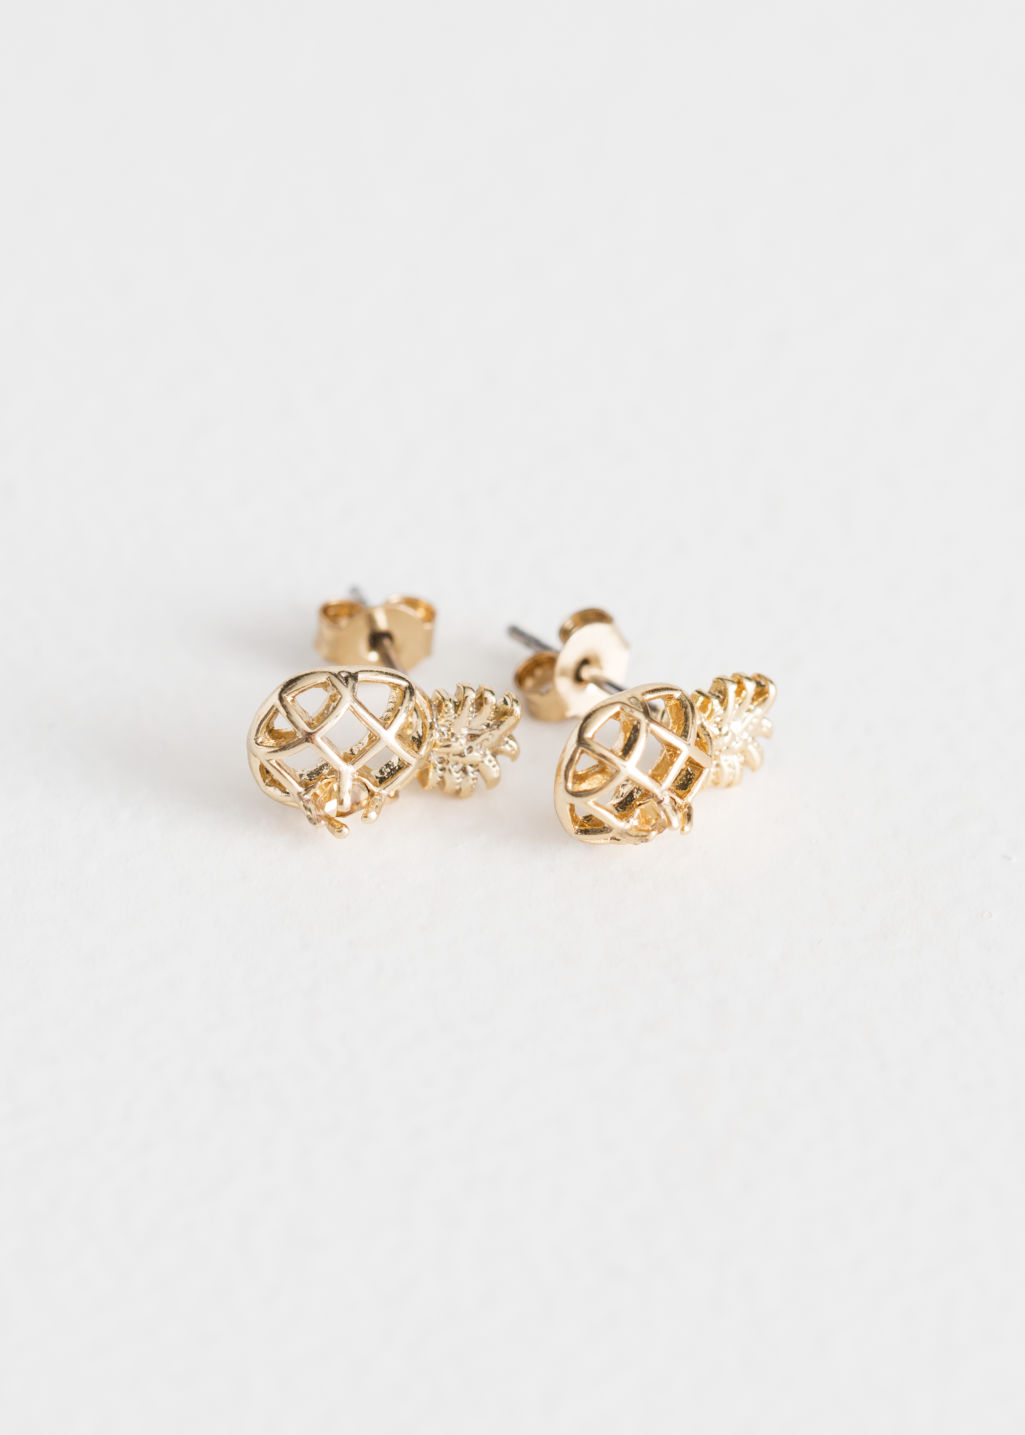 earring com pineapple image product glitsier products stud